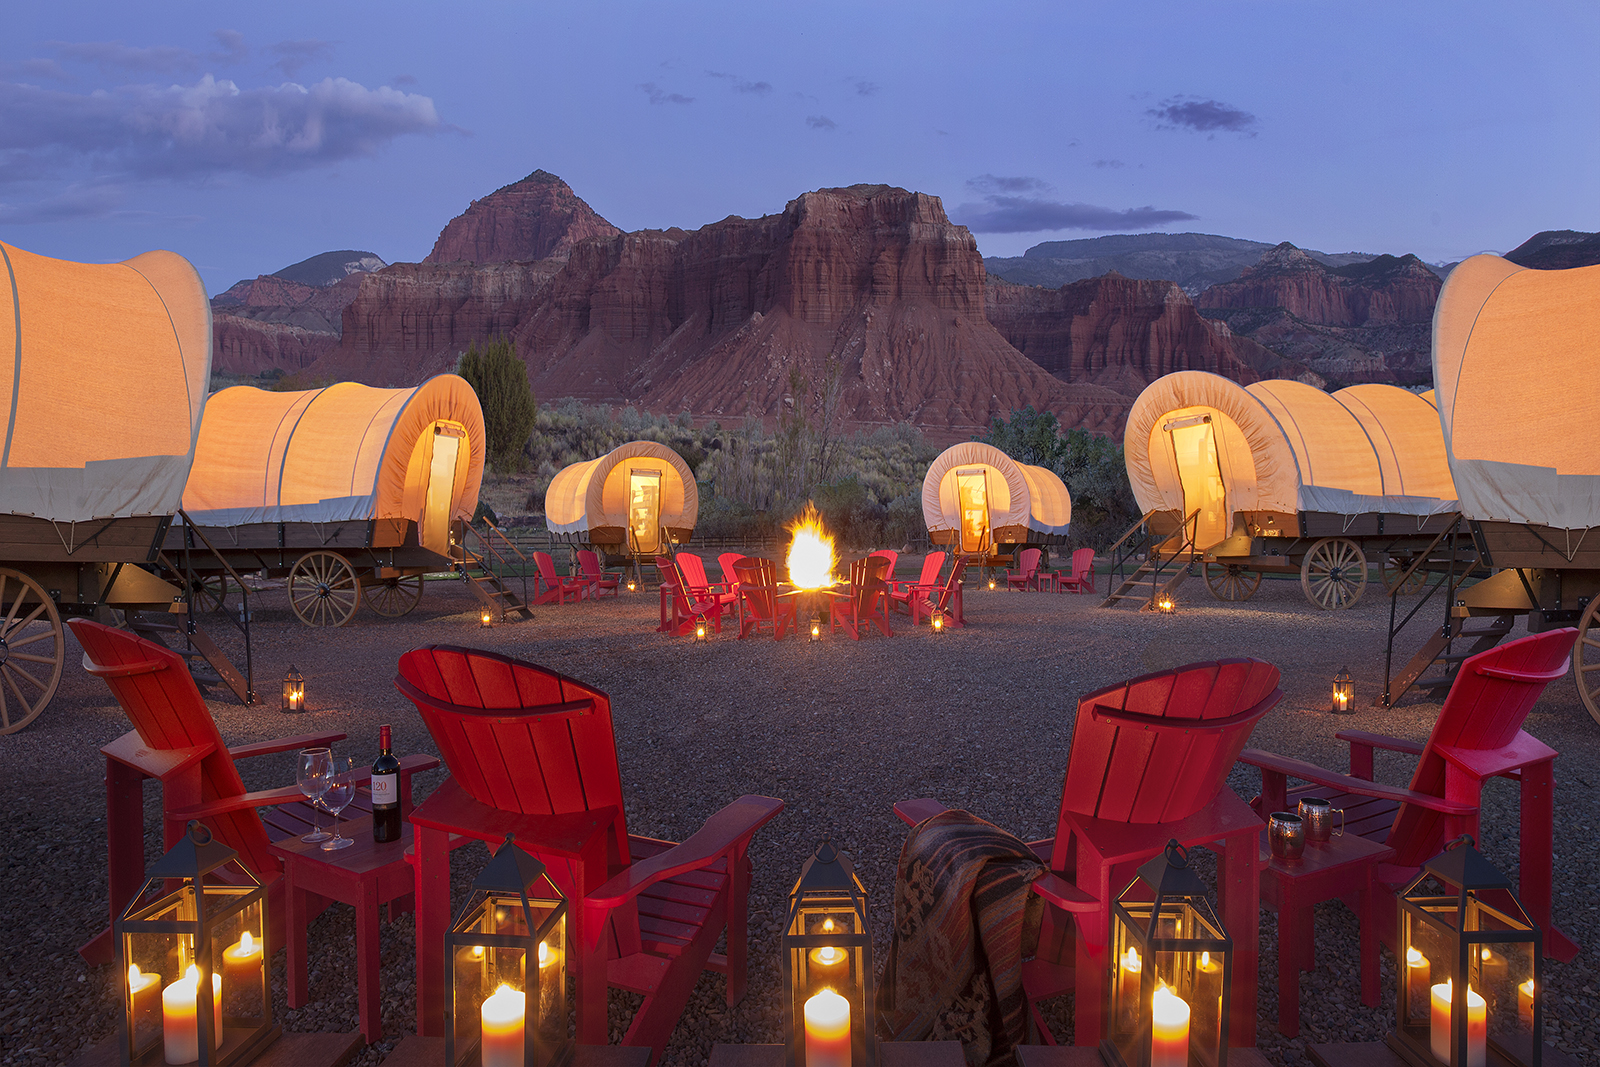 In addition to its standard guest rooms and suites, Capitol Reef Resort offers cabins, tepees, and Conestoga wagons.